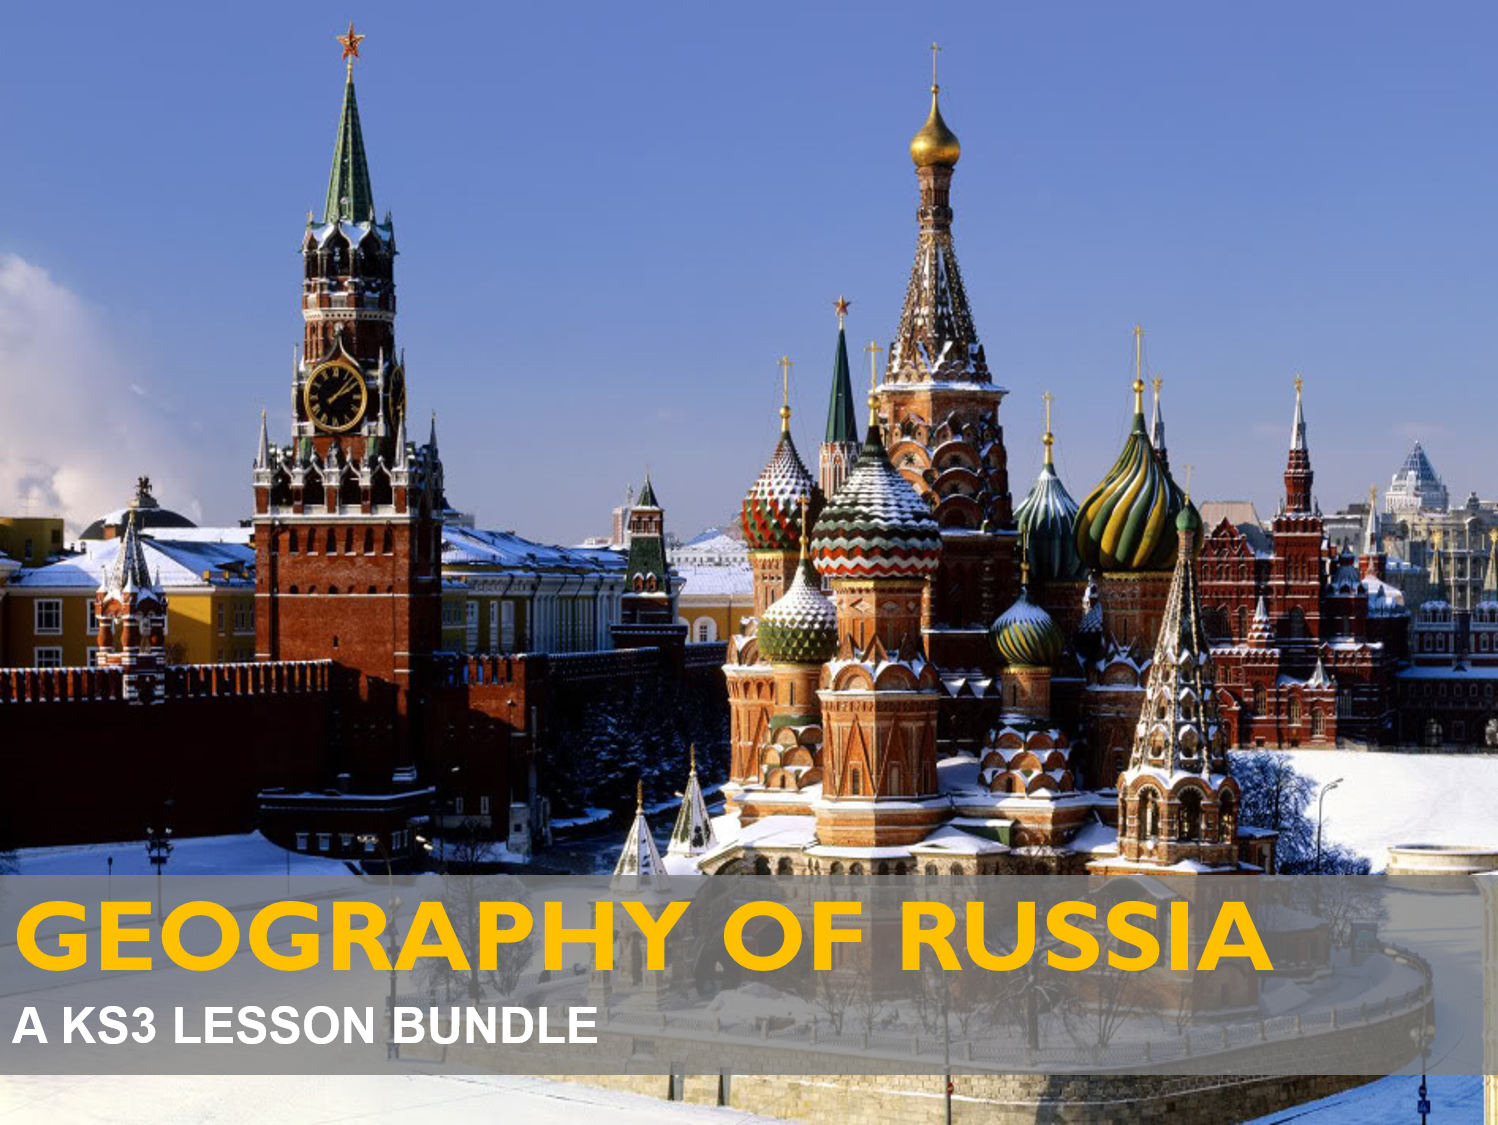 Geography of Russia (Energy Economy) - A KS3 Bundle